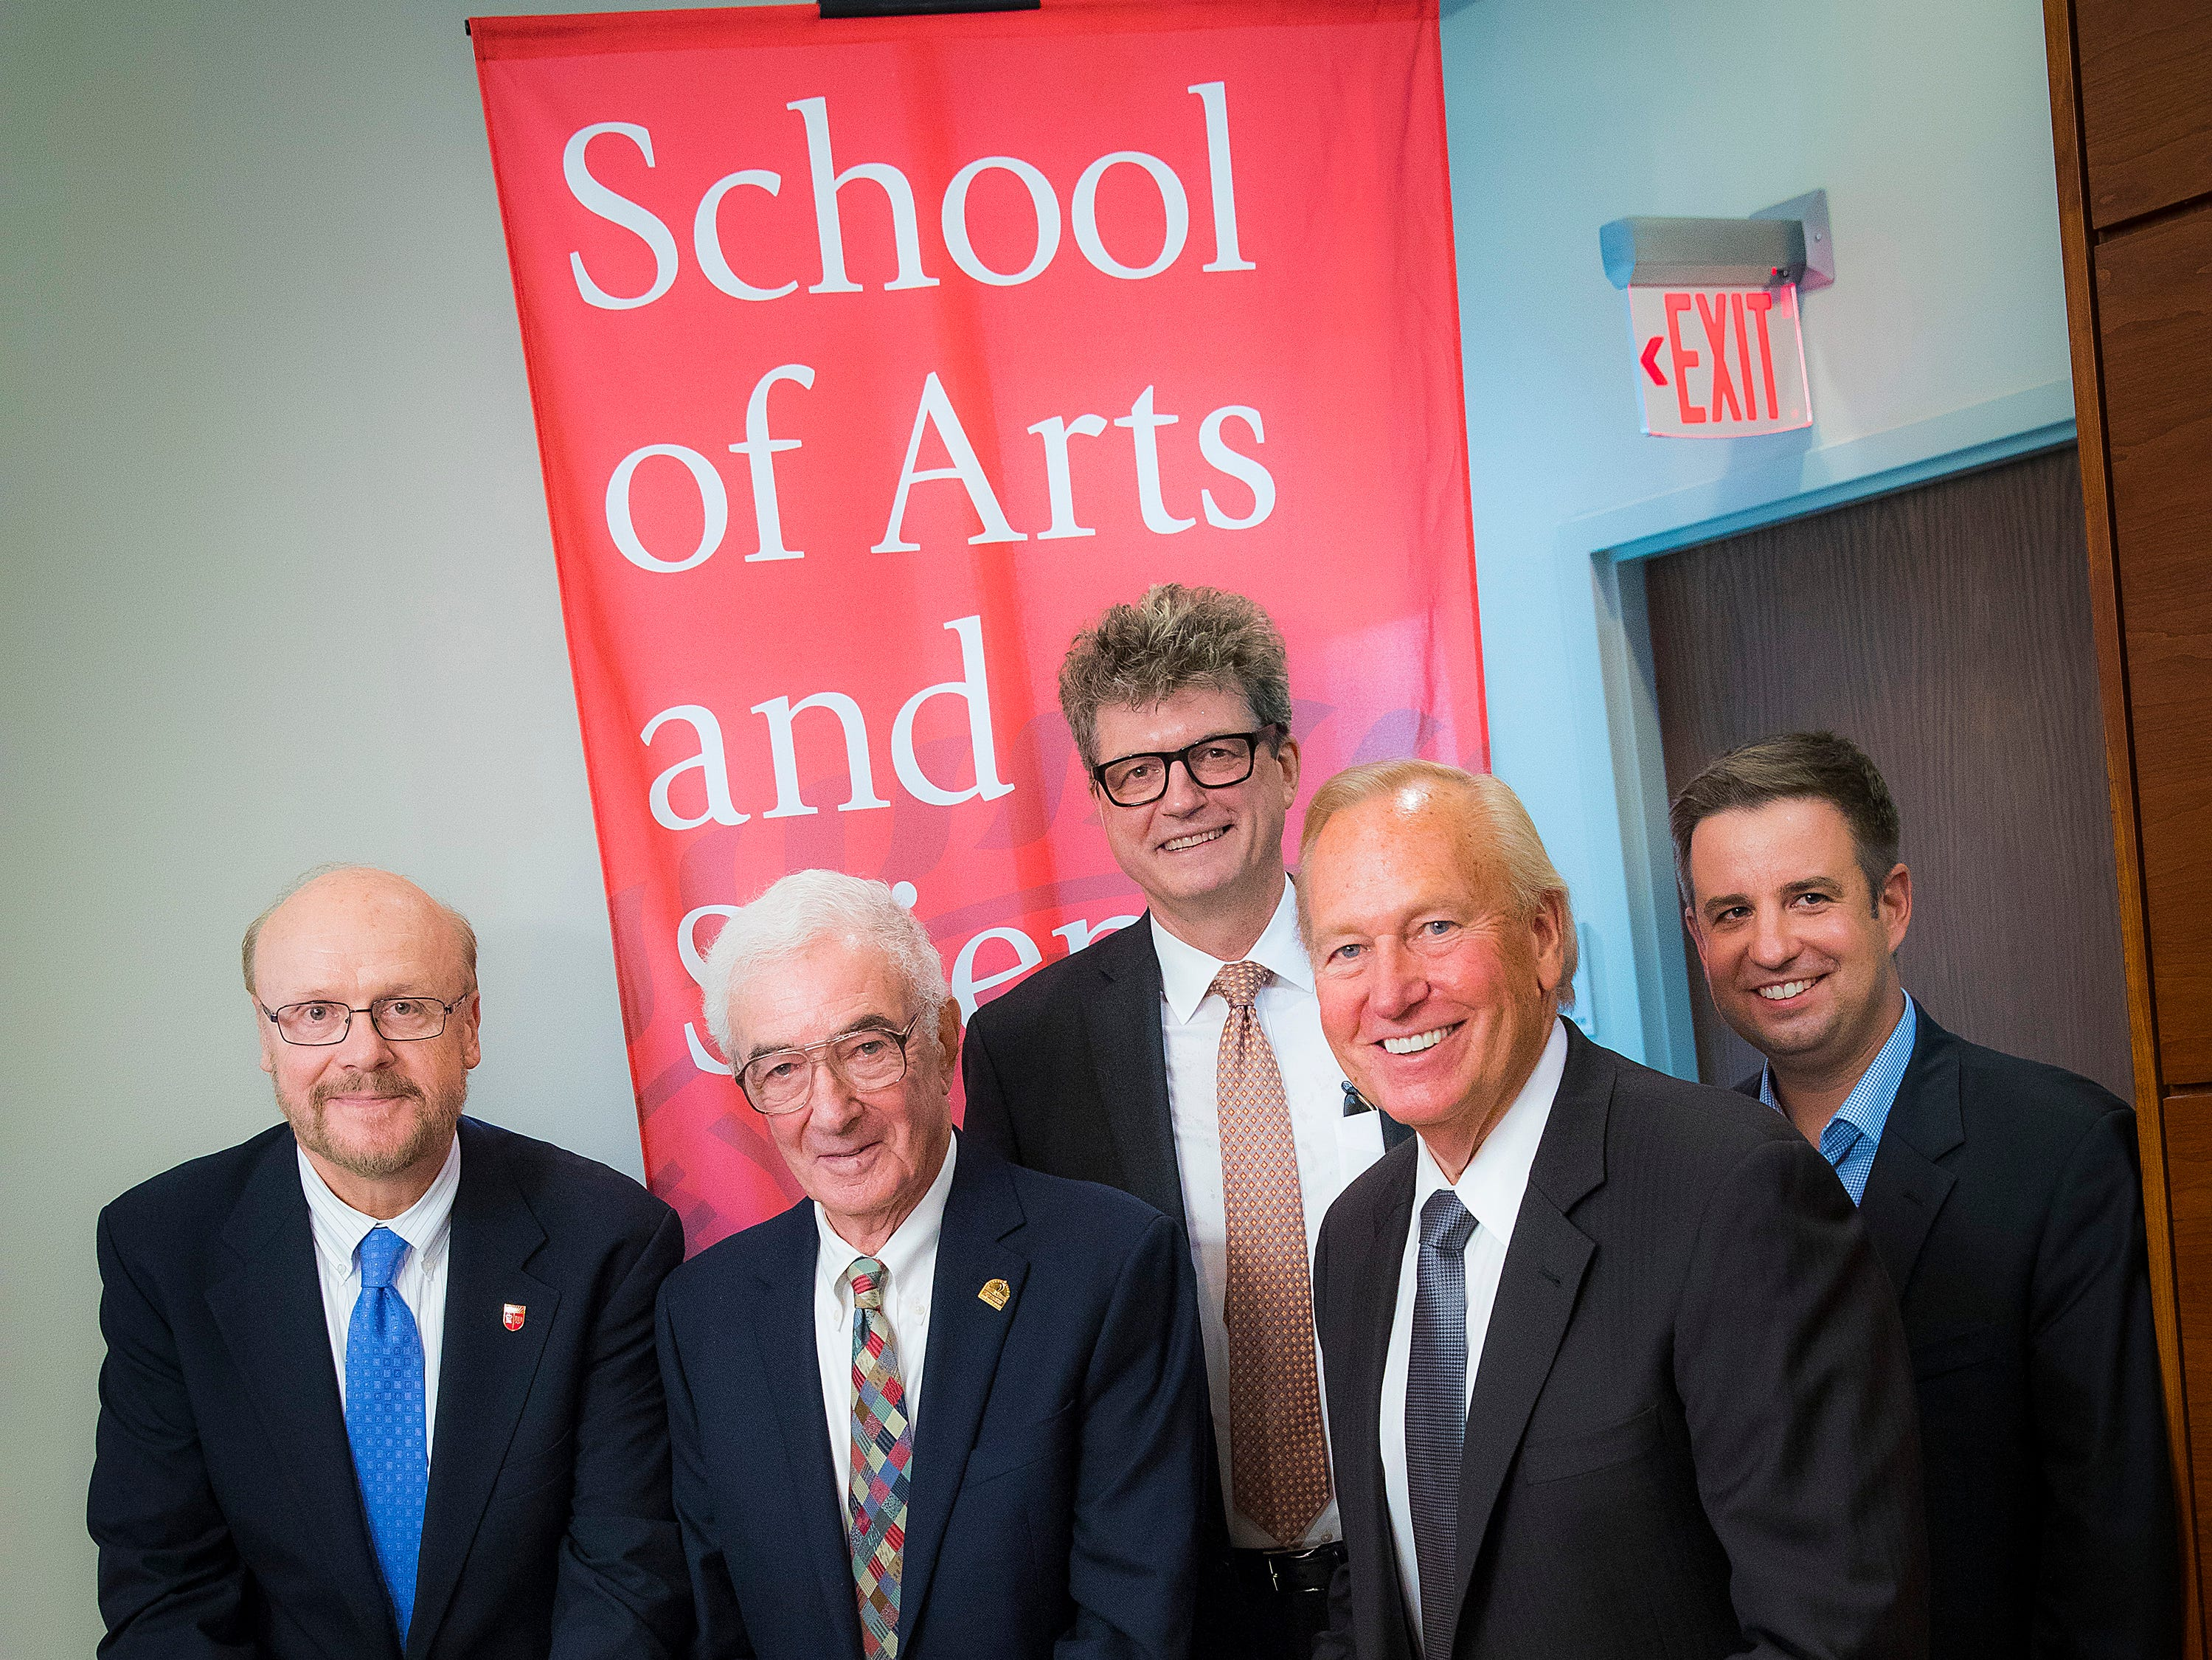 Rutgers and New Brunswick leaders and alums came together to celebrate the opening of an innovative research center by the School of Arts and Sciences in downtown New Brunswick. Pictured from left to right are Christopher Molloy, interim chancellor, Rutgers University–New Brunswick; Bart Klion, Rutgers Class of '48 President; Peter March, executive dean, School of Arts and Sciences;   Mayor James Cahill, and Roman Holowinsky, Rutgers Class of '01,  Graduate School-New Brunswick Class of '06, director, Erdos Institute, and co-founding chairman emeritus of The STEAM Factory.